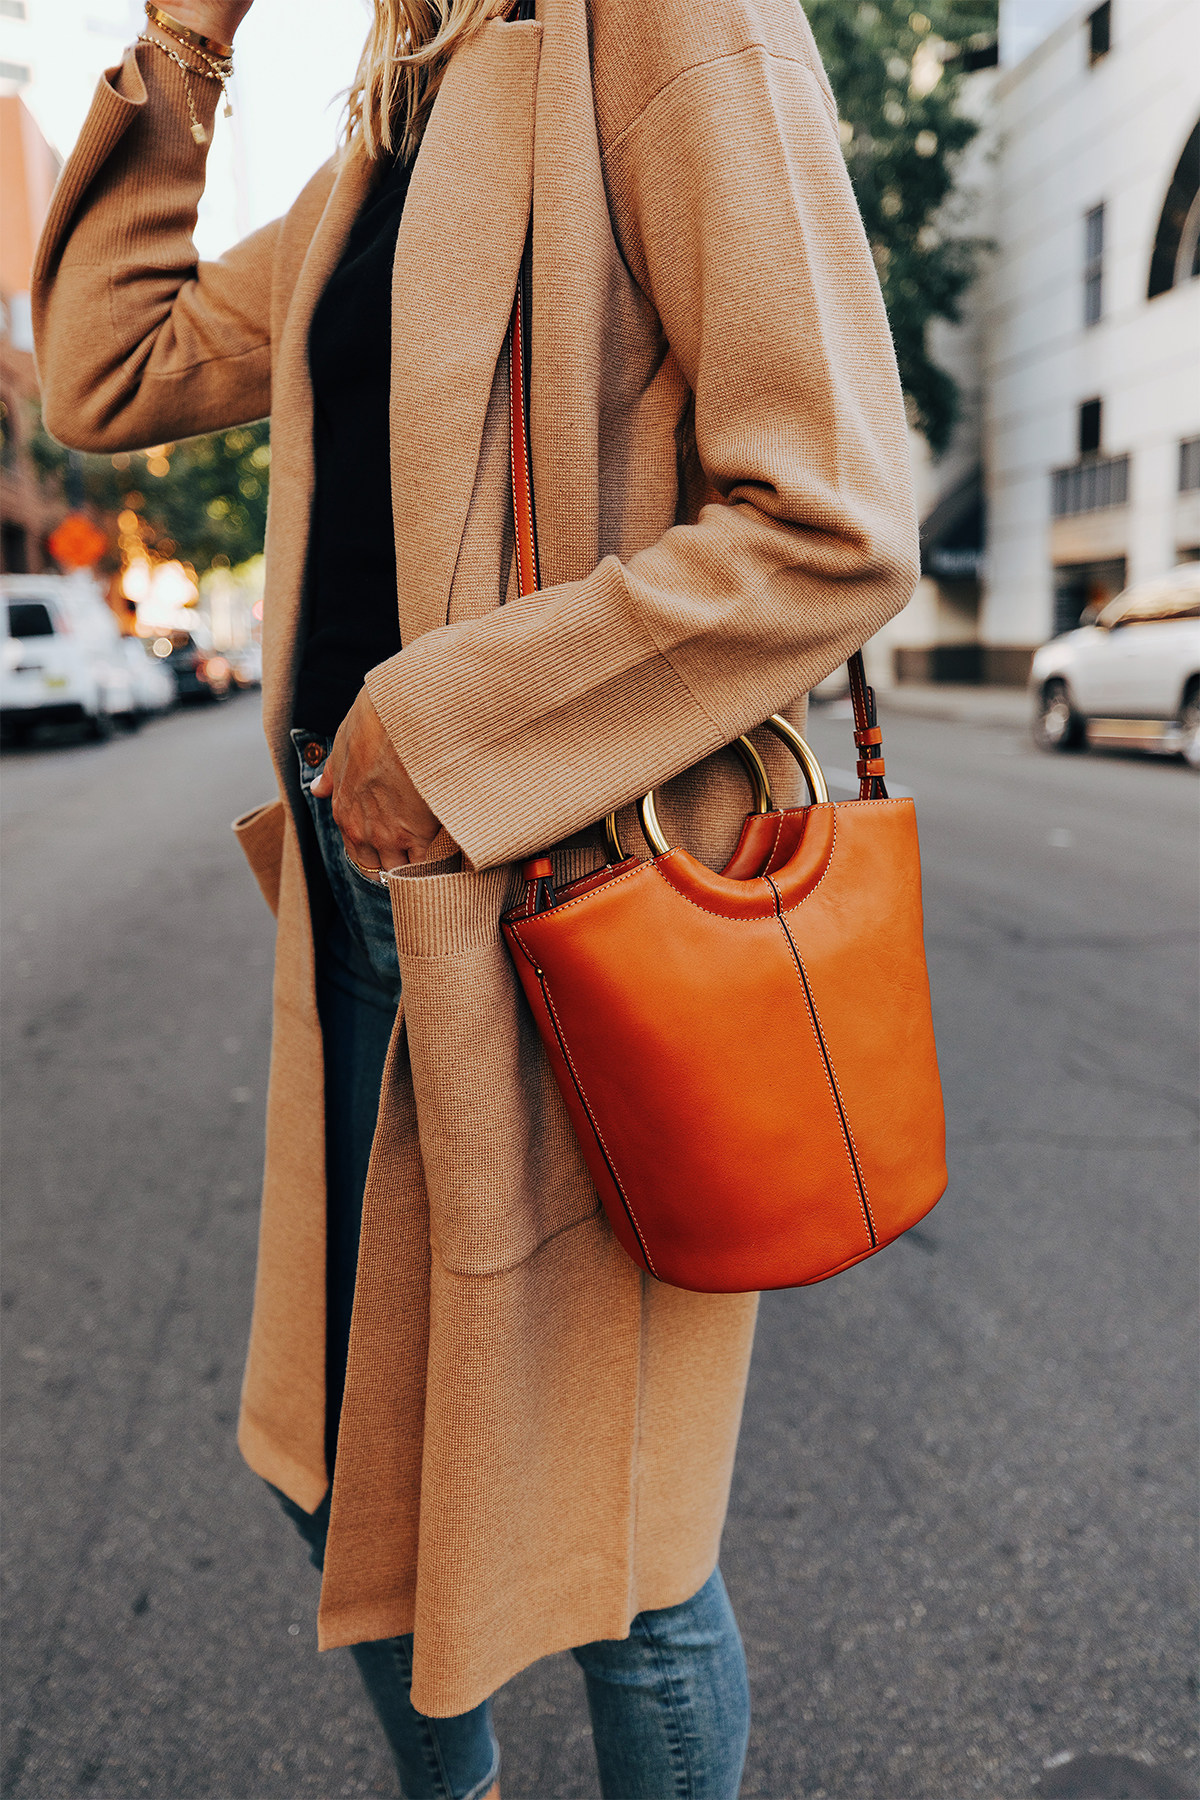 Fashion Jackson Wearing Jcrew Camel Long Sweater Coatigan Cognac Bucket Bag Fall Outfit